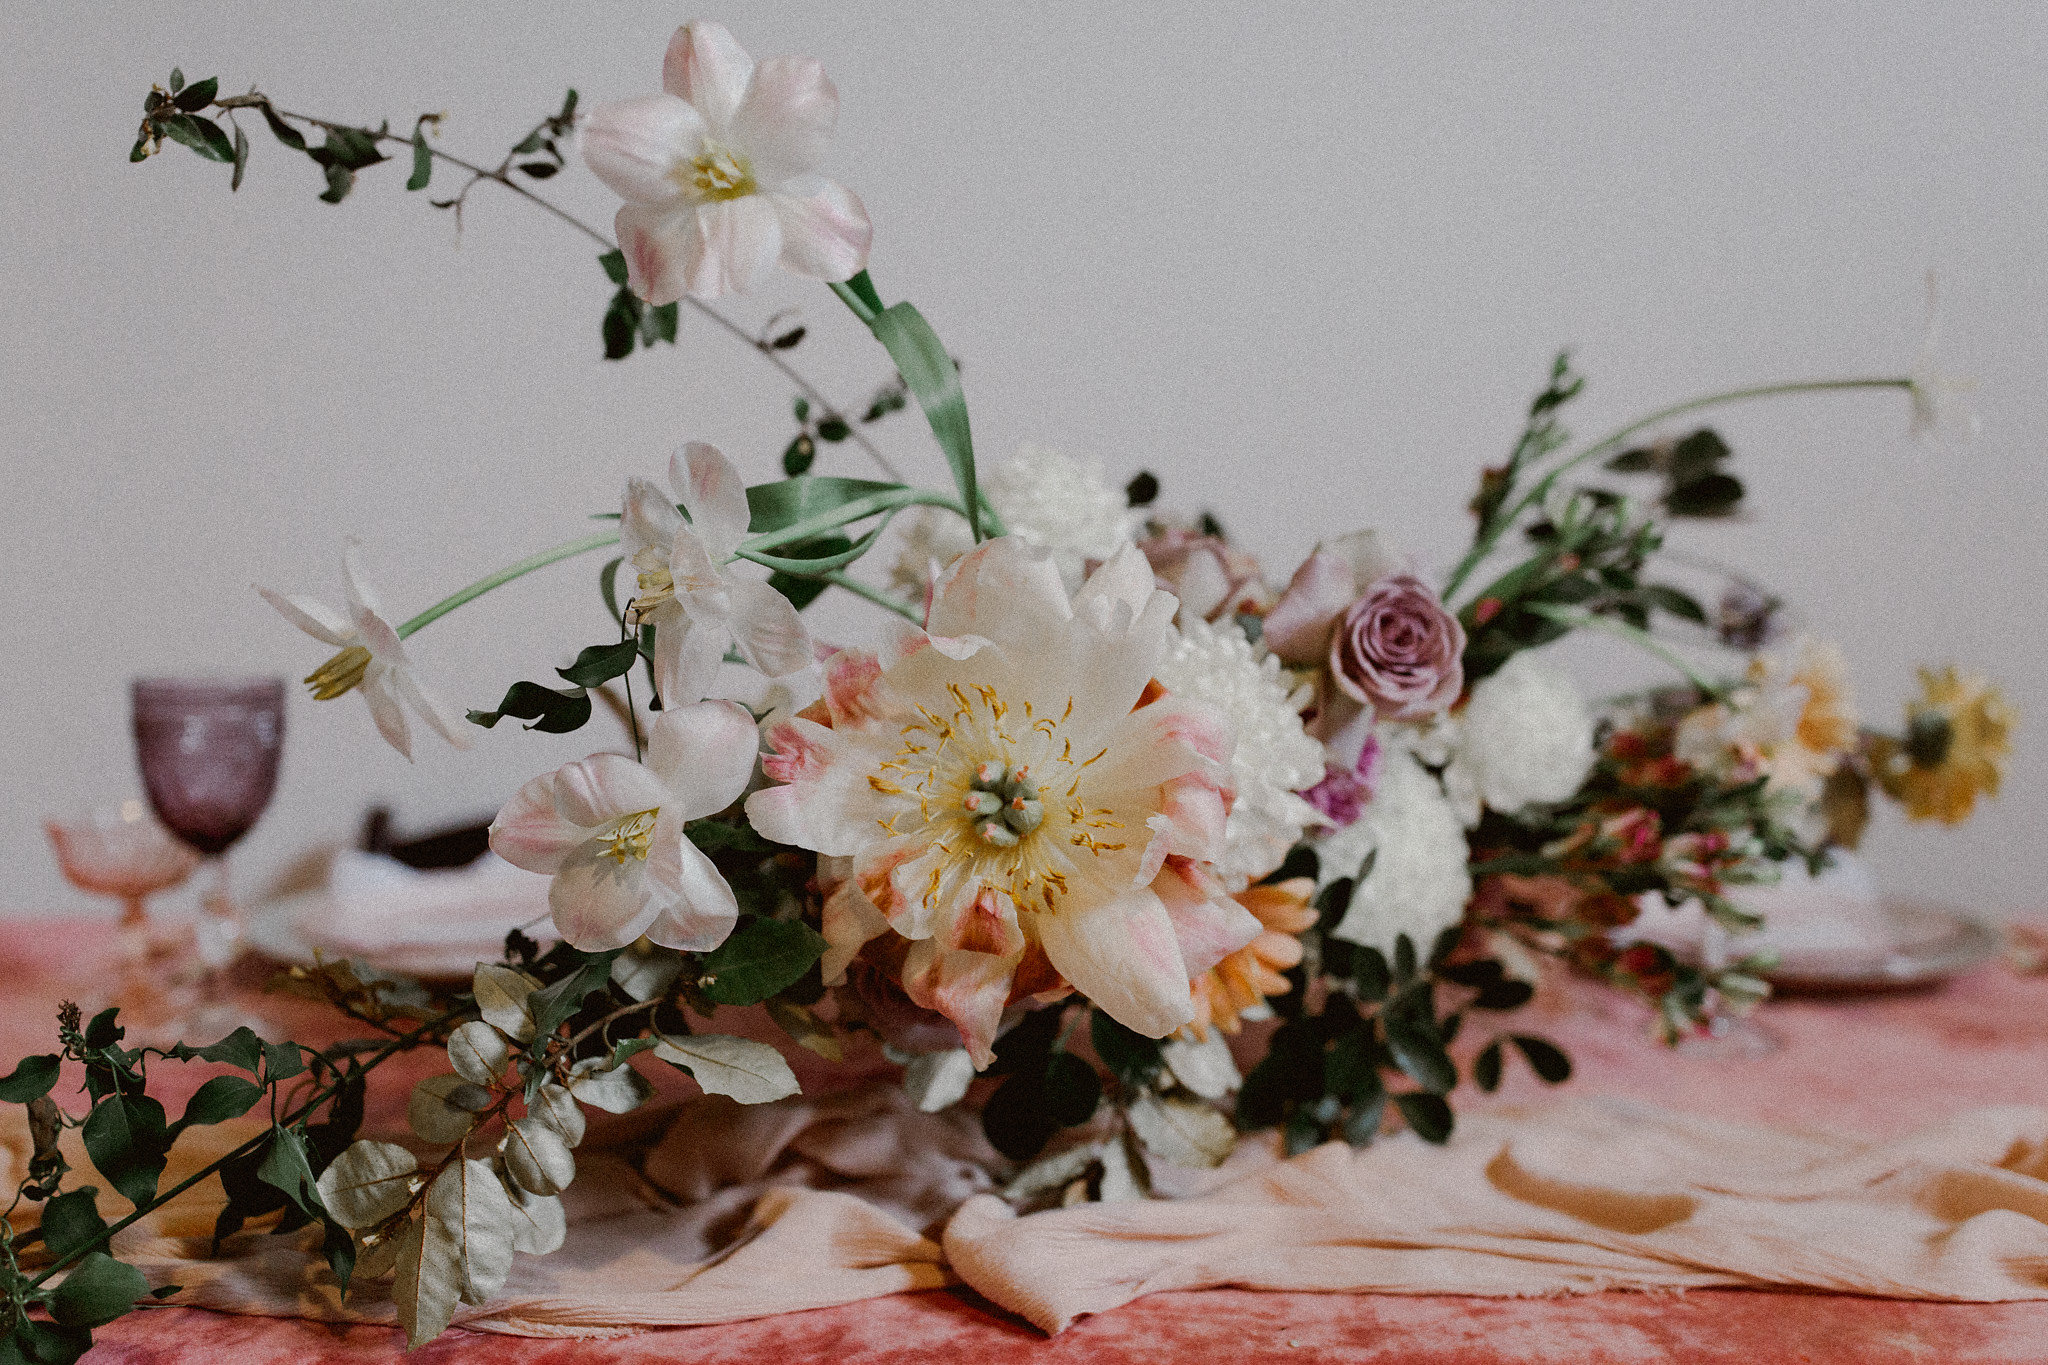 Pink Velvet Table Inspiration | Studio Tersilla Floral Design Inspiration | Bryan, Texas | Pink + Purple + Vintage + Romantic + Blush + Daisy + Peony + Organic + Wild + Juicy Colorful | College Station Wedding Coordinator Epoch Co+